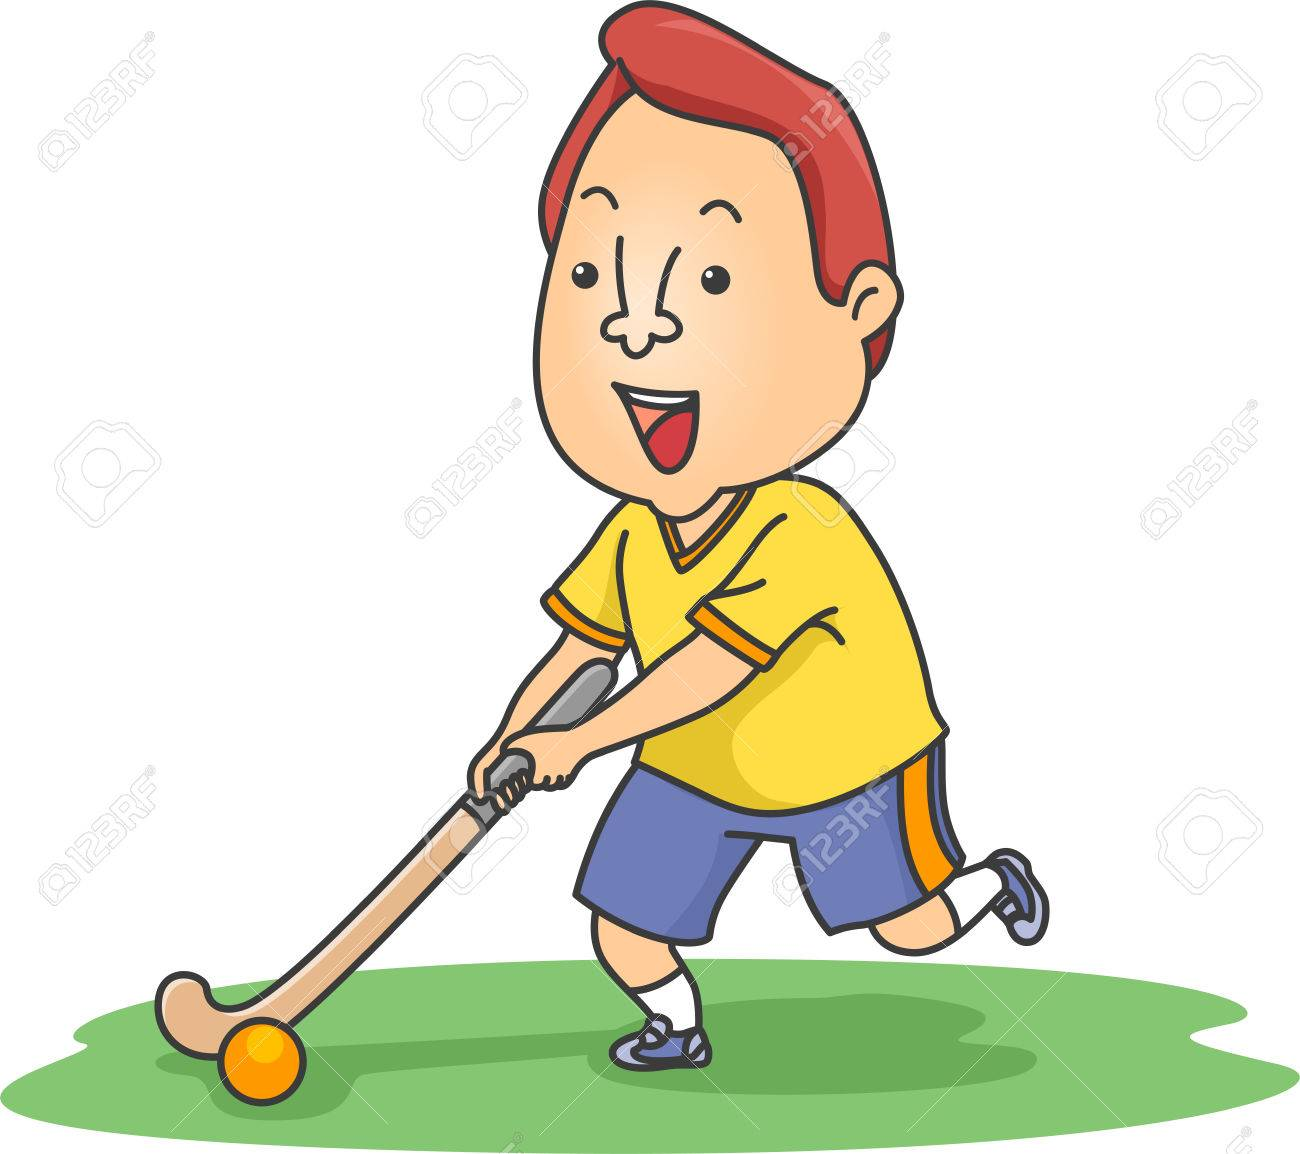 illustration of a field hockey player moving a ball across a